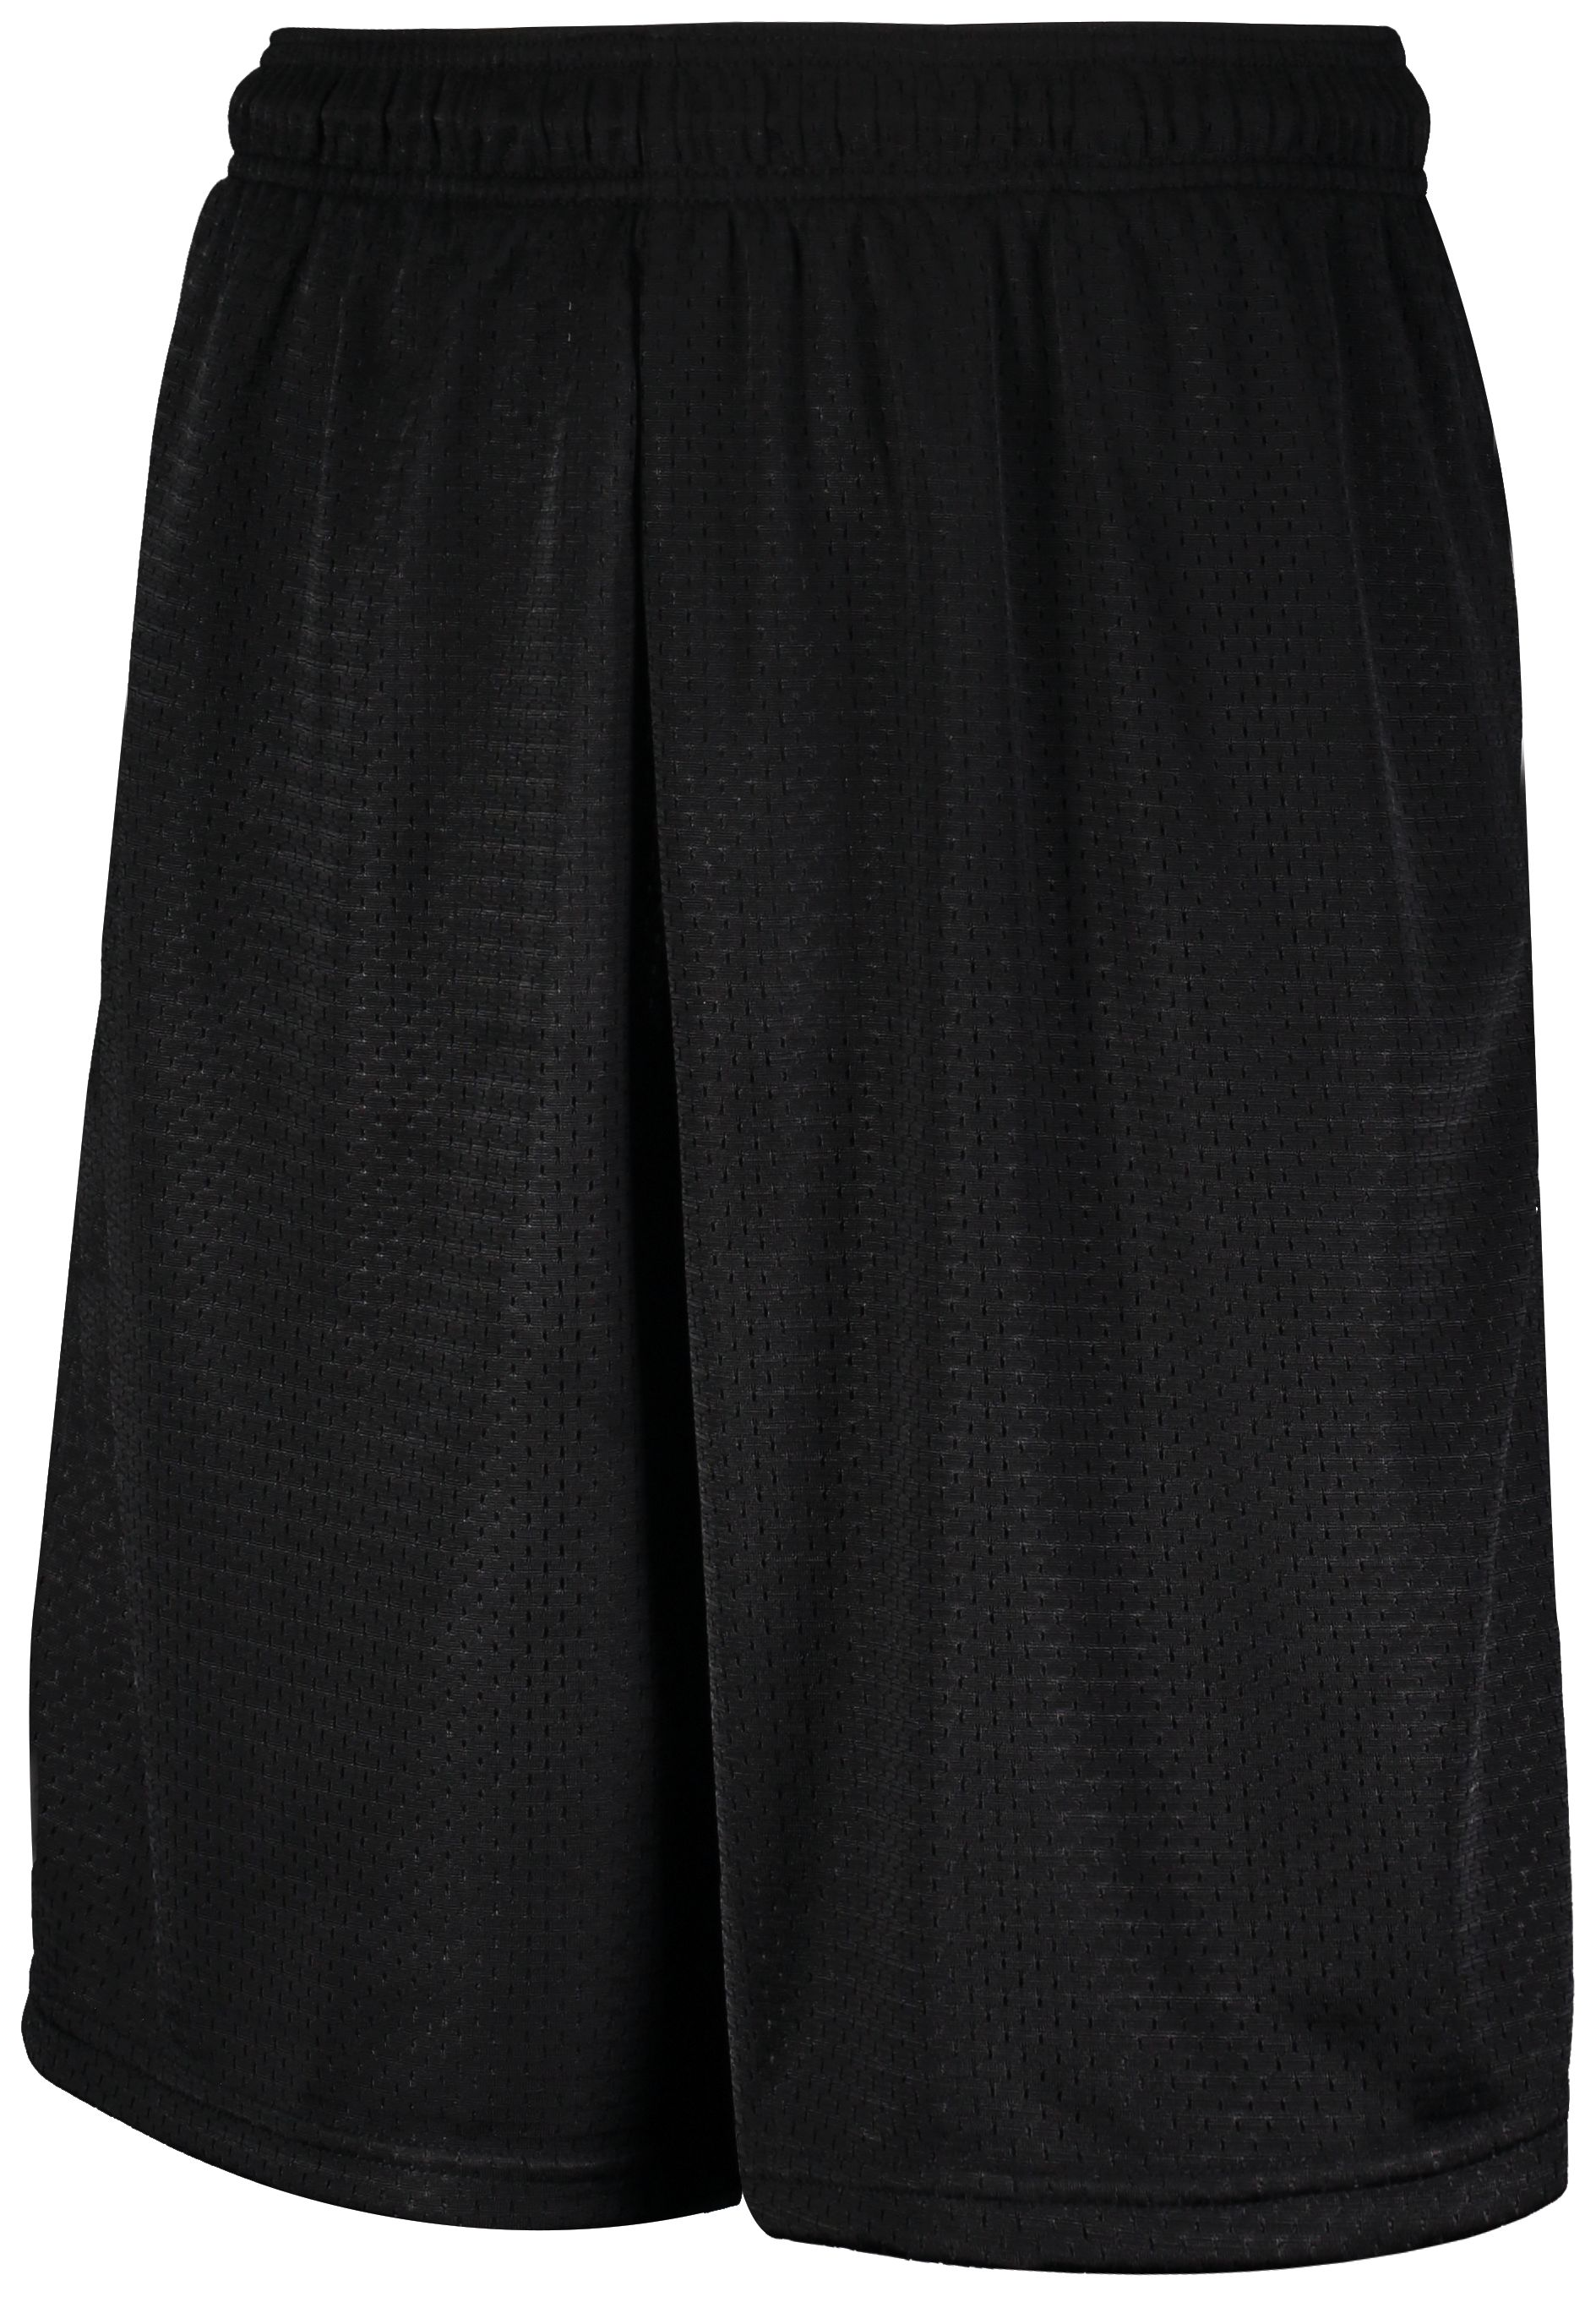 Mesh Shorts With Pockets - Black